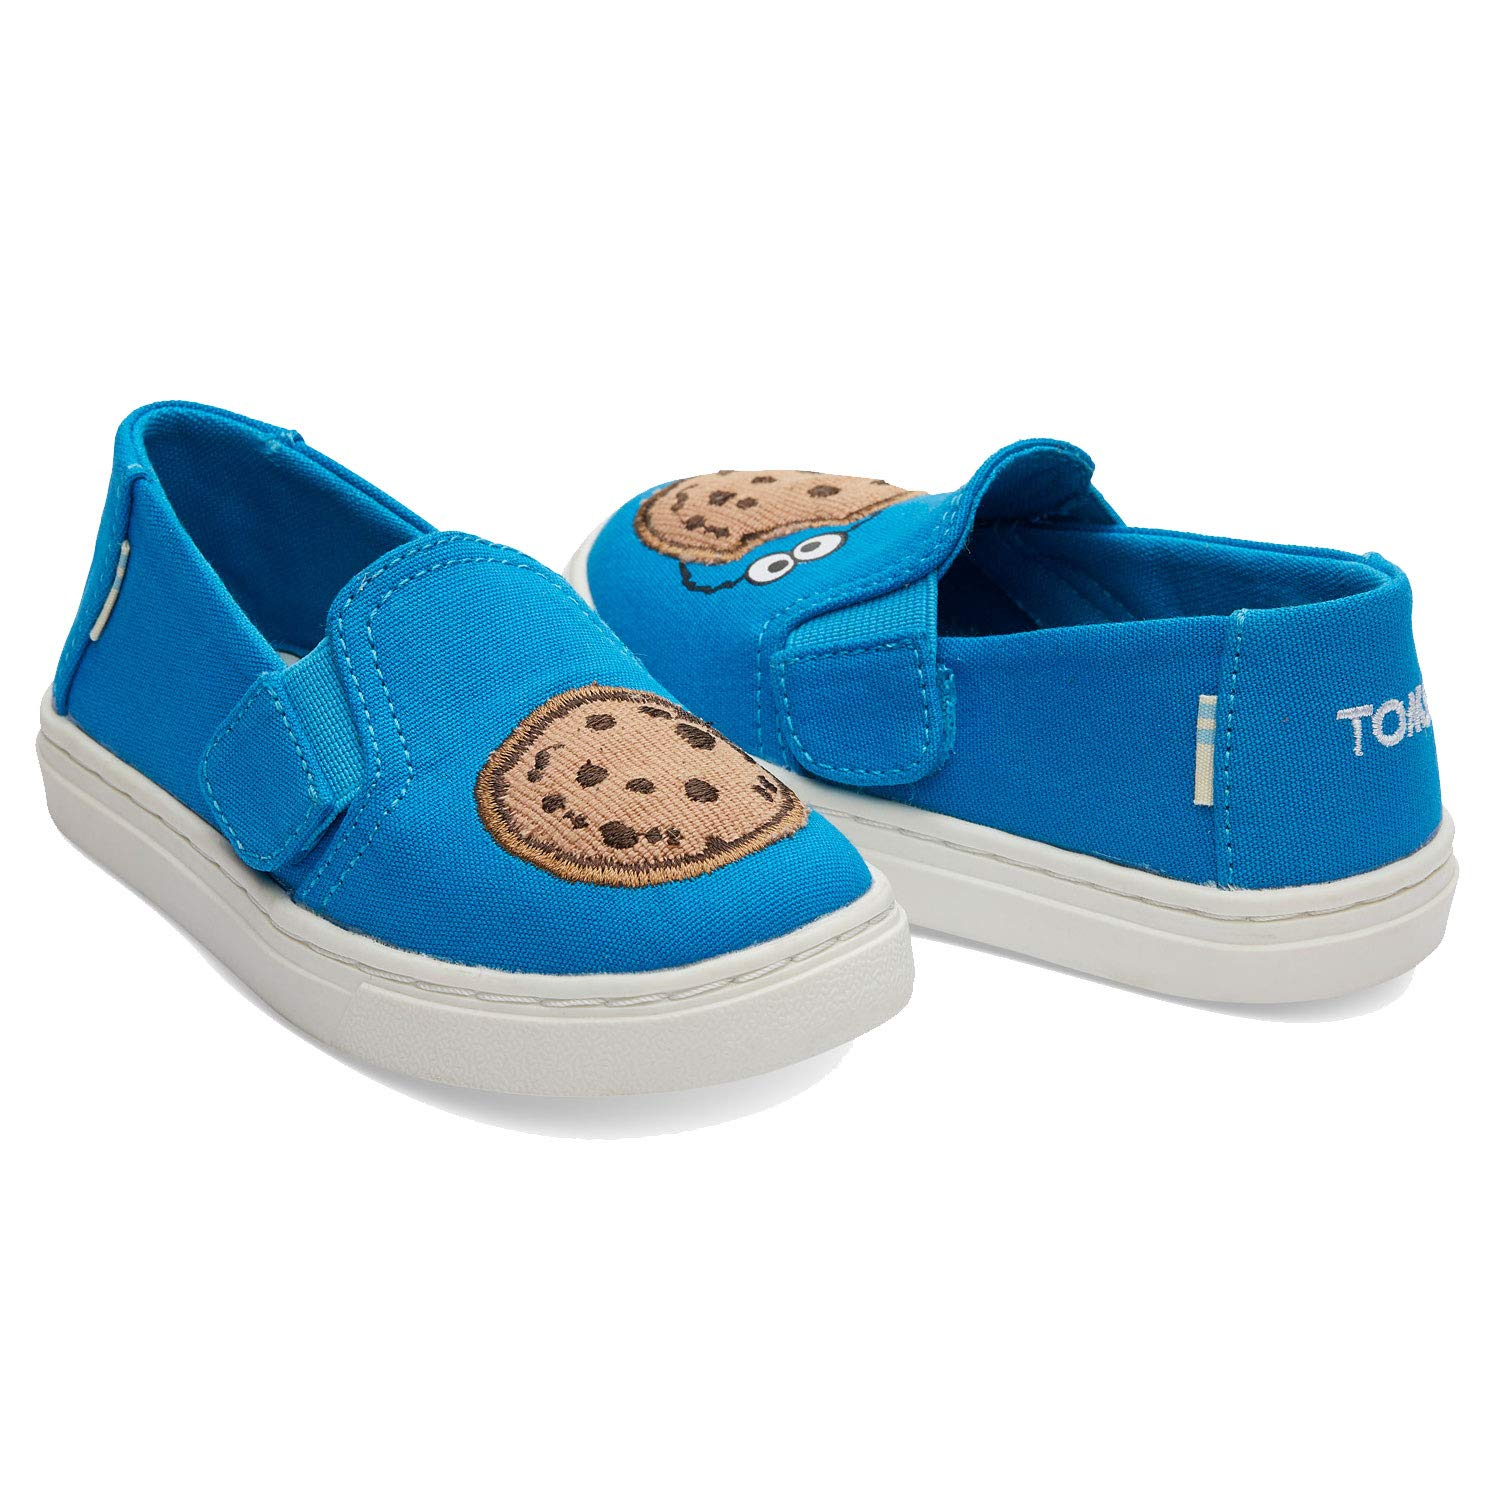 TOMS Sesame Street X Cookie Monster Applique Tiny Luca Slip-Ons 10013646 (Size: 9) Blue by TOMS (Image #2)